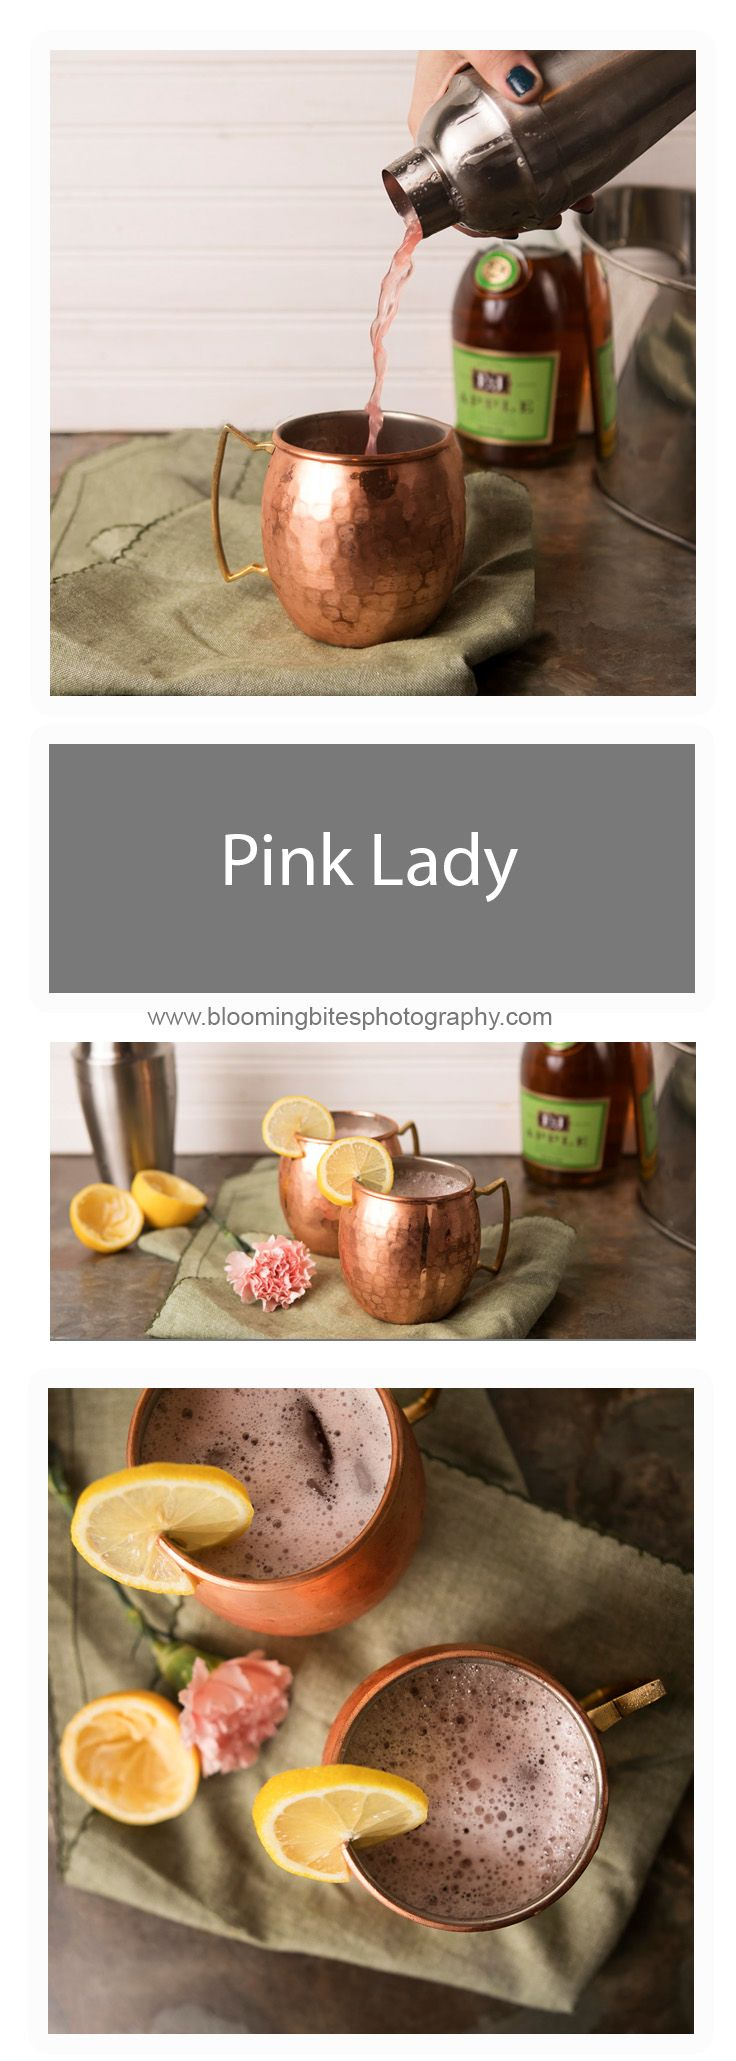 **Giveaway Alert** For a delicious Pink Lady recipe, and instruction on how to win two of these handcrafted high-quality mugs, be sure to follow this post to our blog!